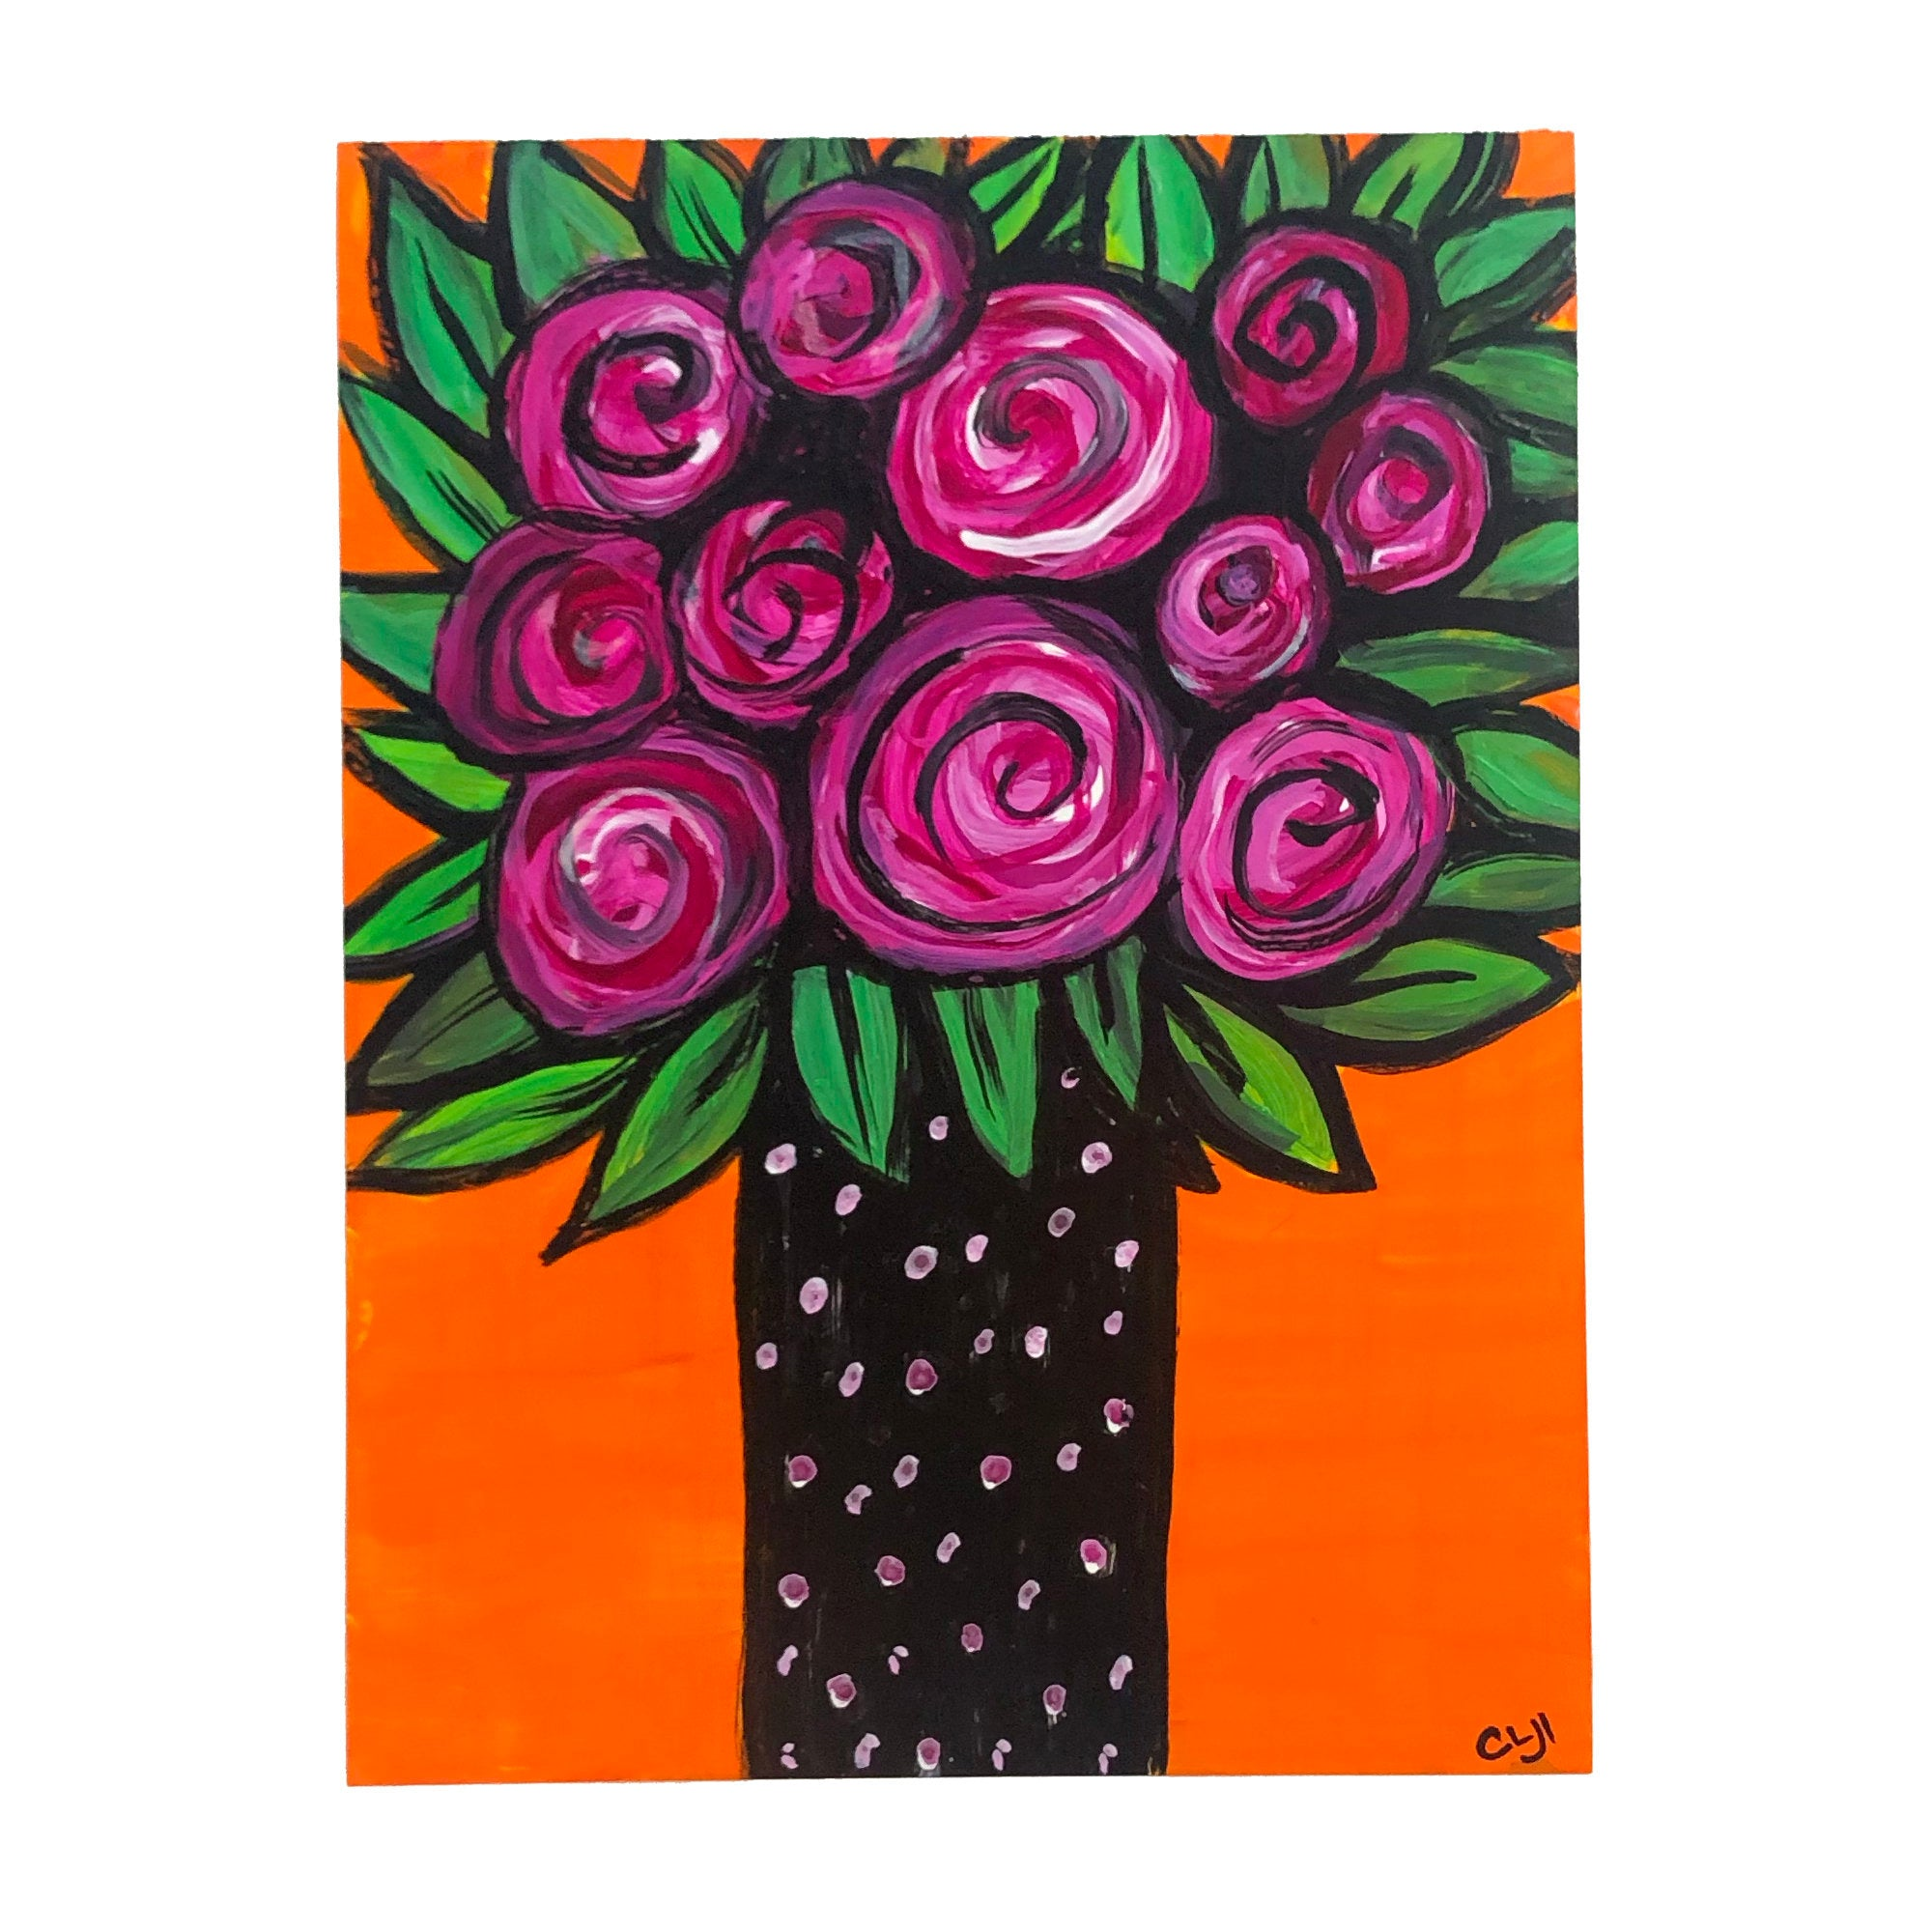 Magenta Roses in Vase Bold Painting on Paper with Bright Orange Background - Whimsical Flower Art on Yupo Paper - 9x12 unframed artwork